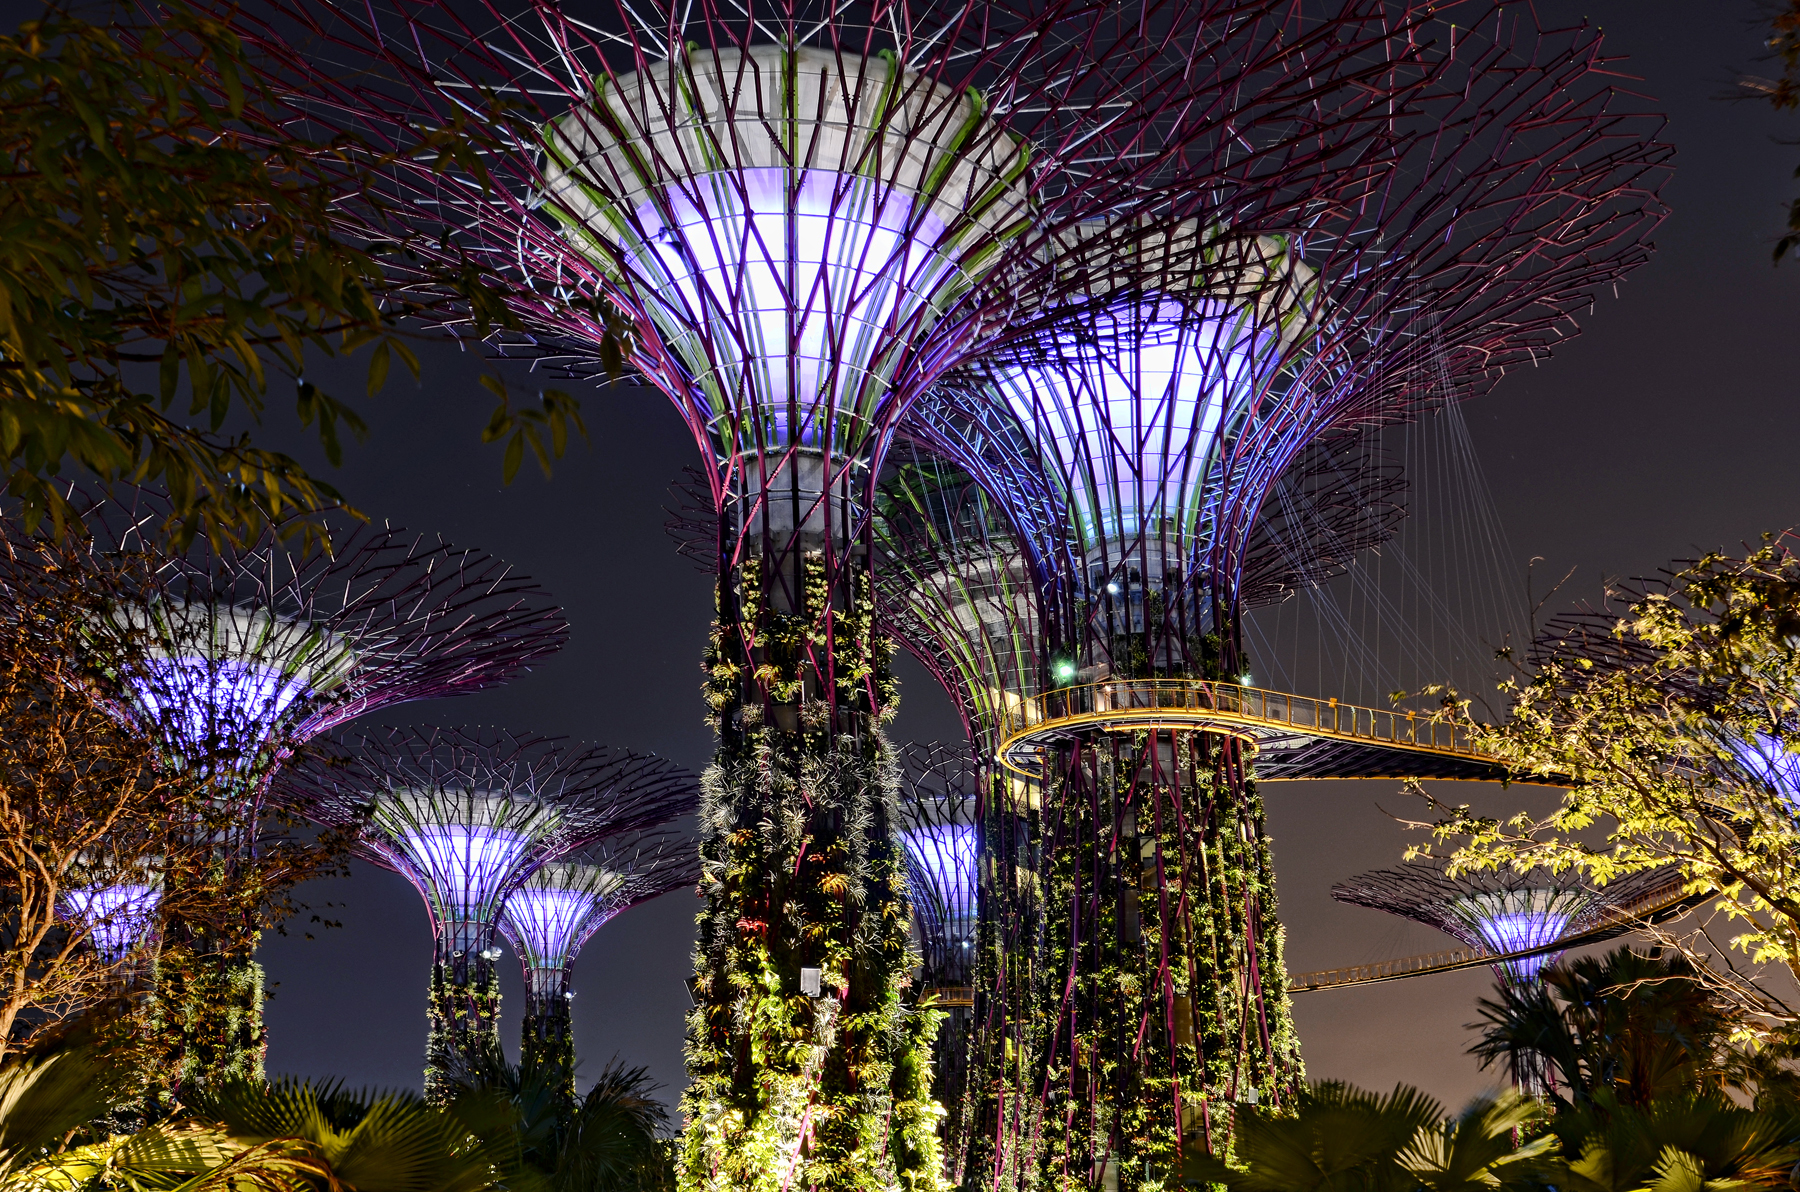 Gardens by the bay urban park in singapore thousand wonders - Garden by the bay flower show ...